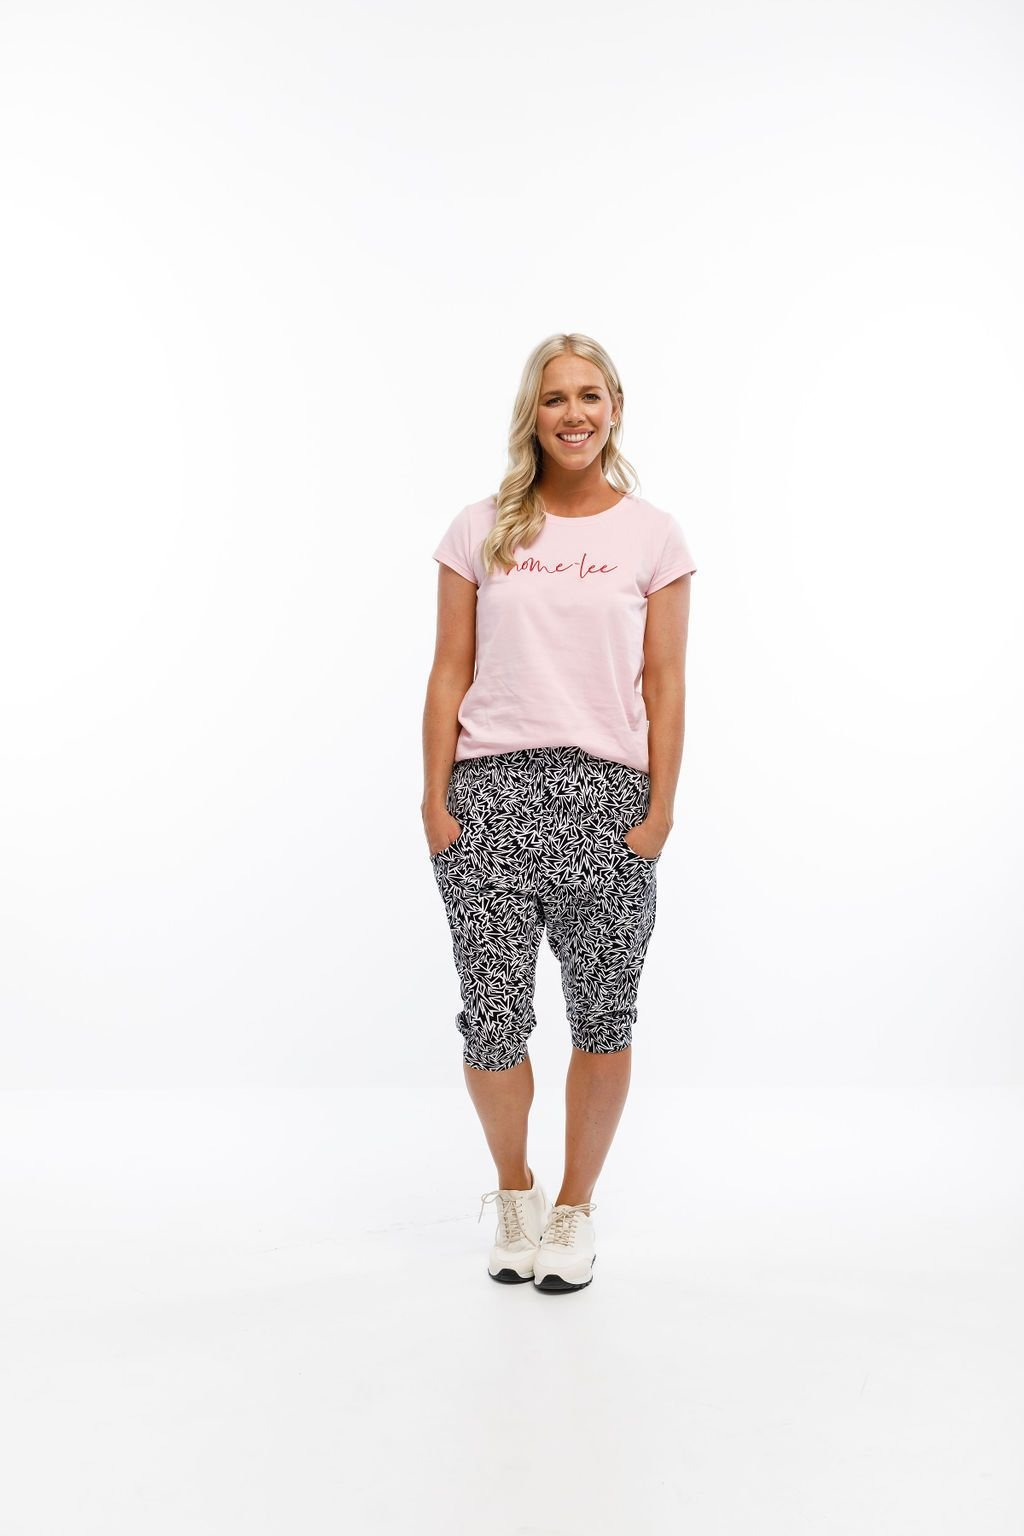 3/4 APARTMENT PANT IN PAPER PLANE PRINT - No image set - Ebony Boutique NZ